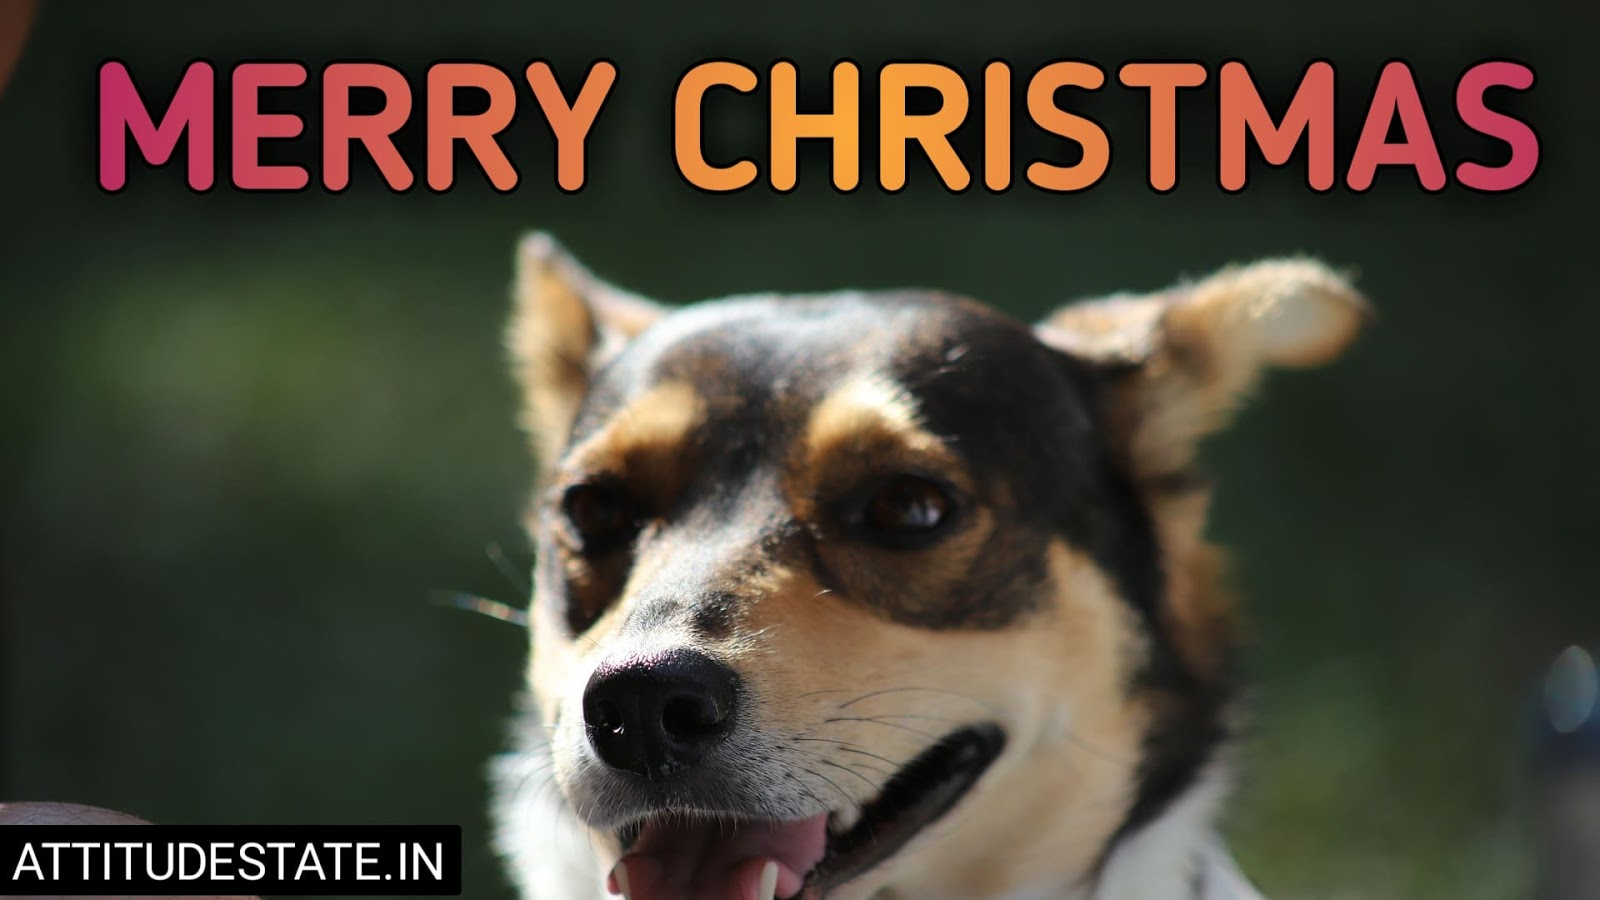 funny merry christmas gif free download